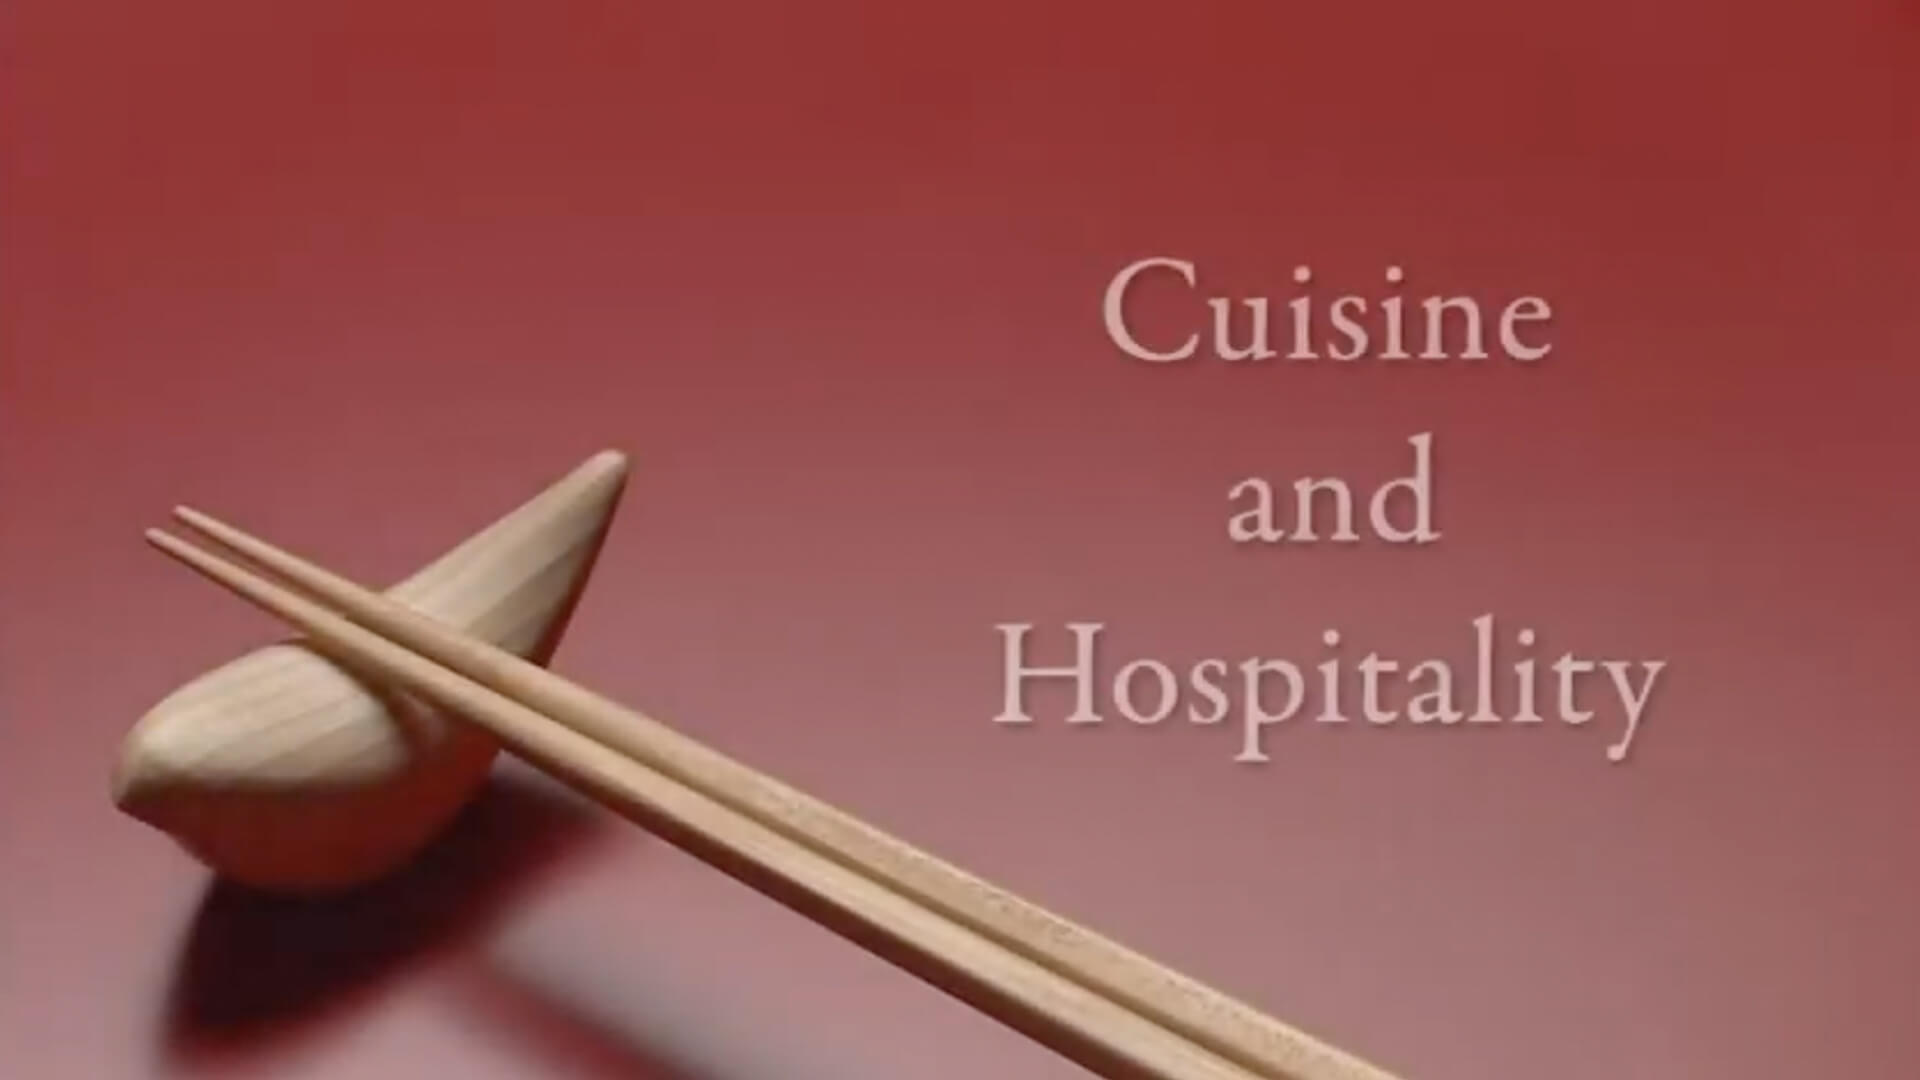 Cuisine and Hospitality